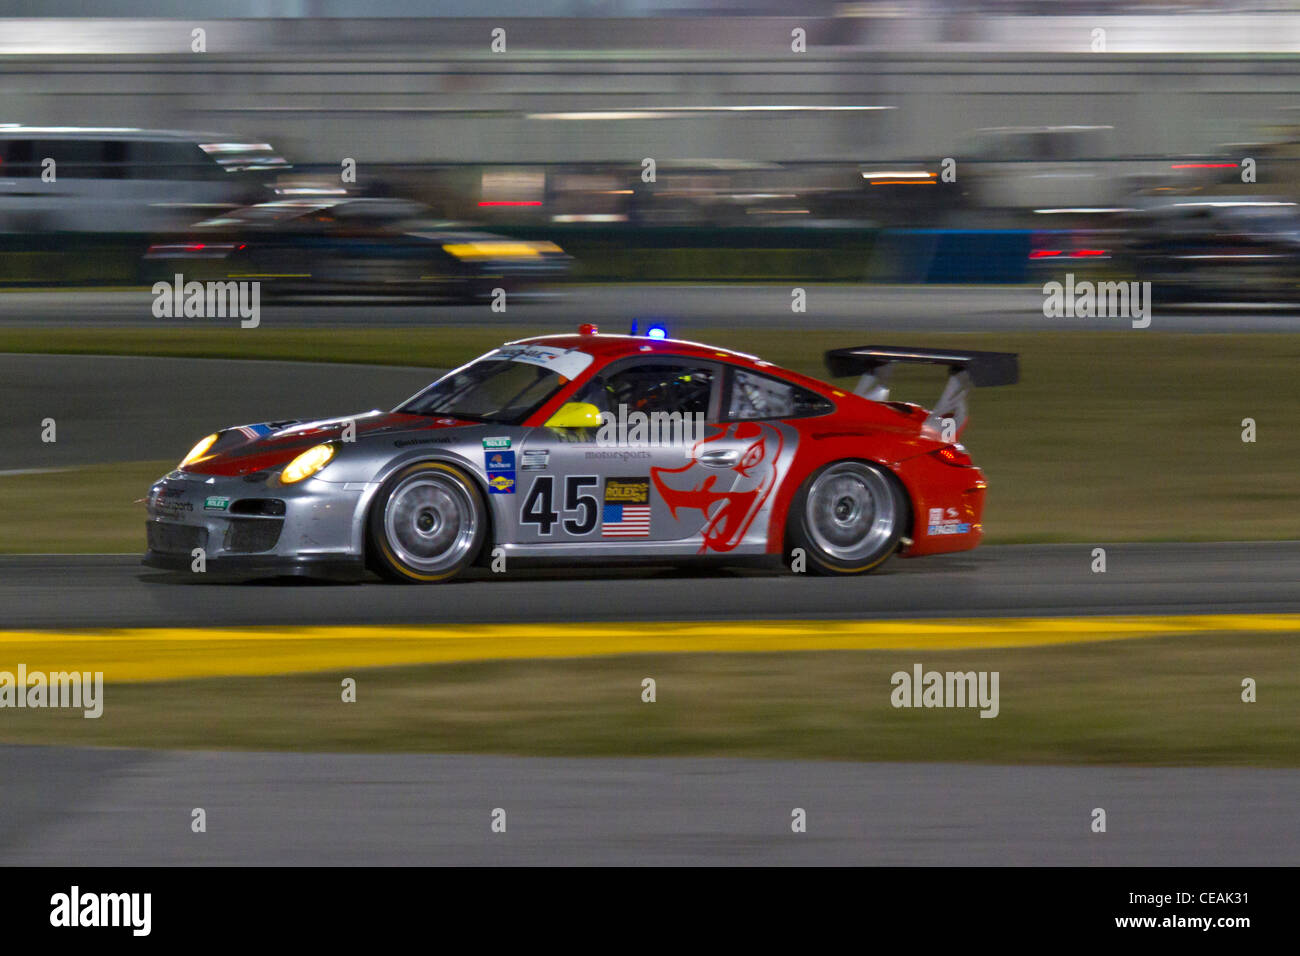 The No. 45 Flying Lizard Motorsports Porsche GT racing in the 50th Anniversary 2012 Rolex 24 At Daytona - Stock Image